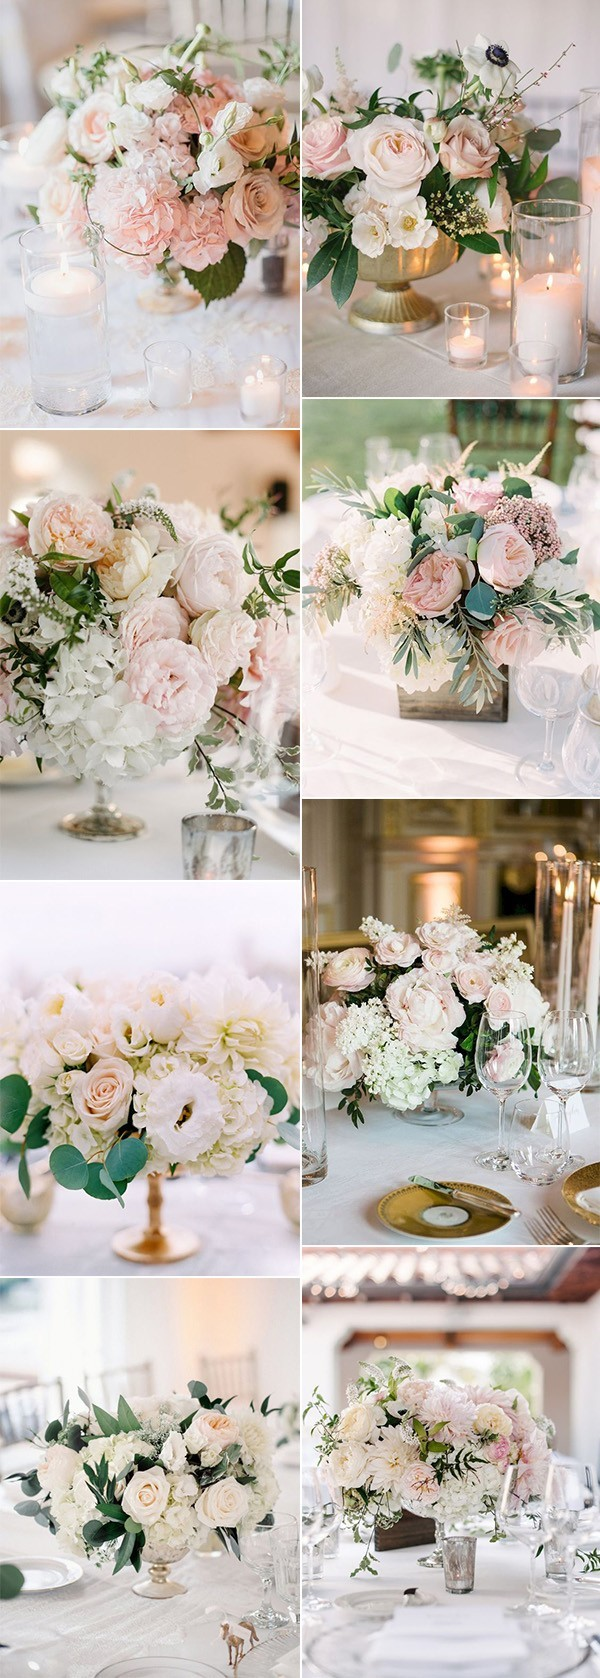 elegant blush pink wedding centerpieces